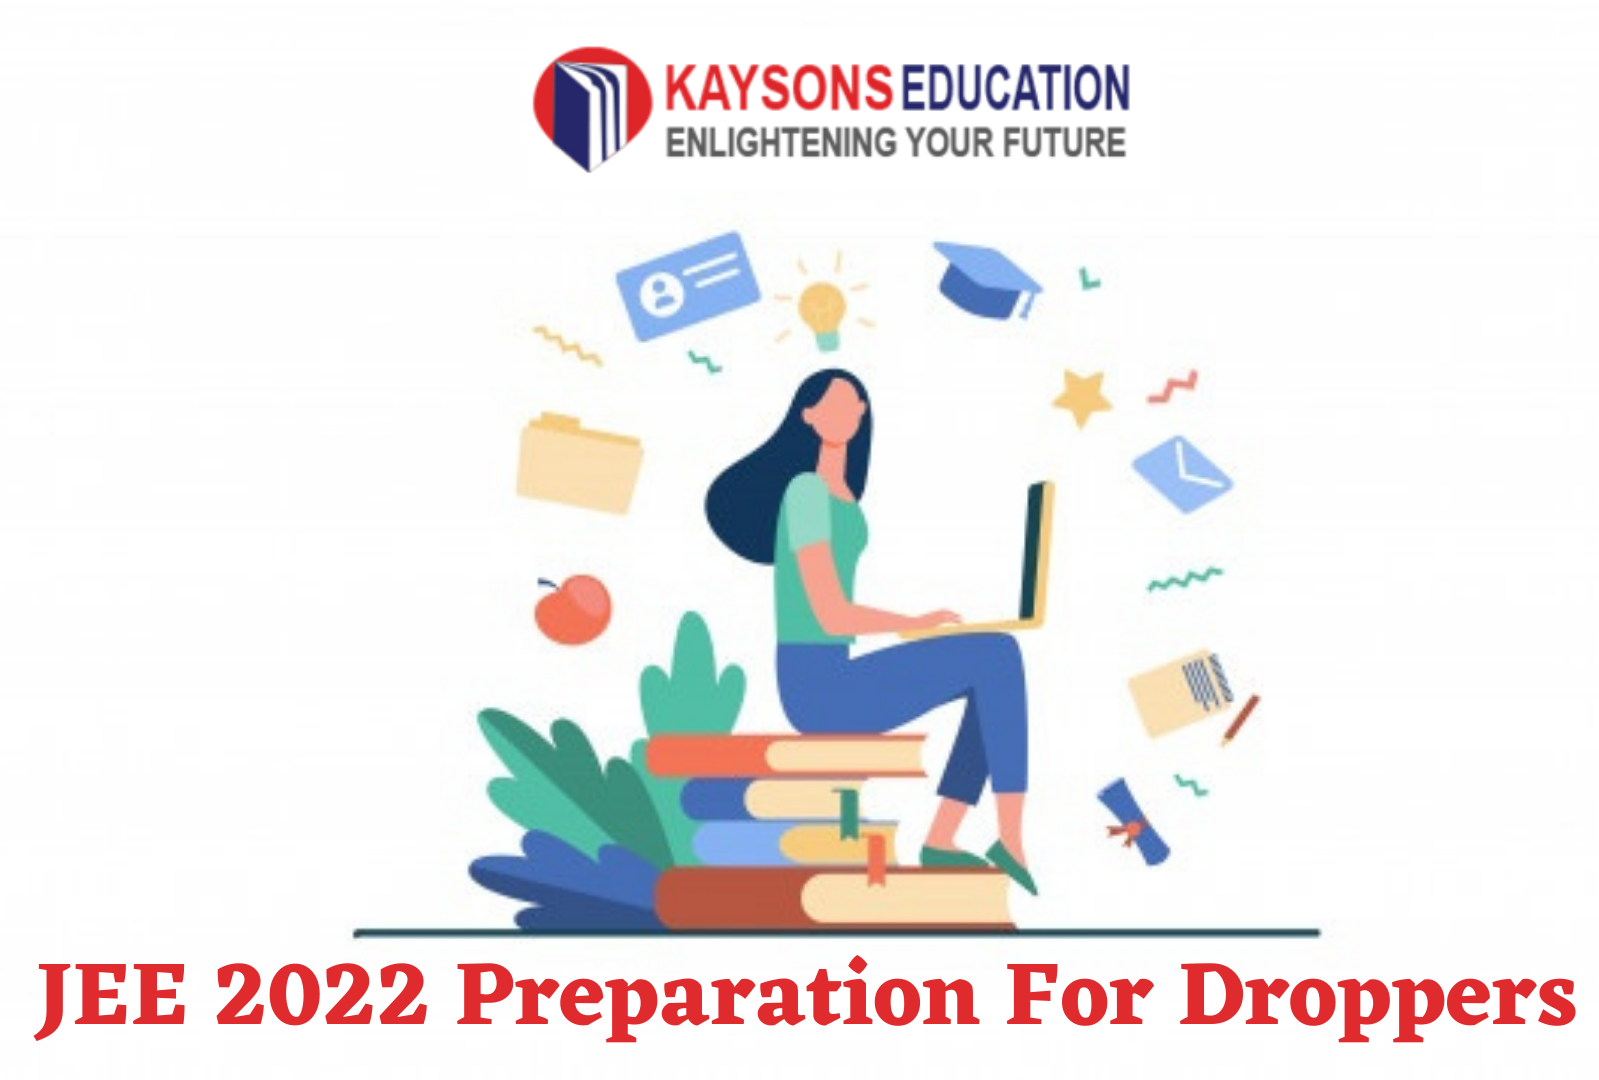 JEE 2022 Preparation For Droppers